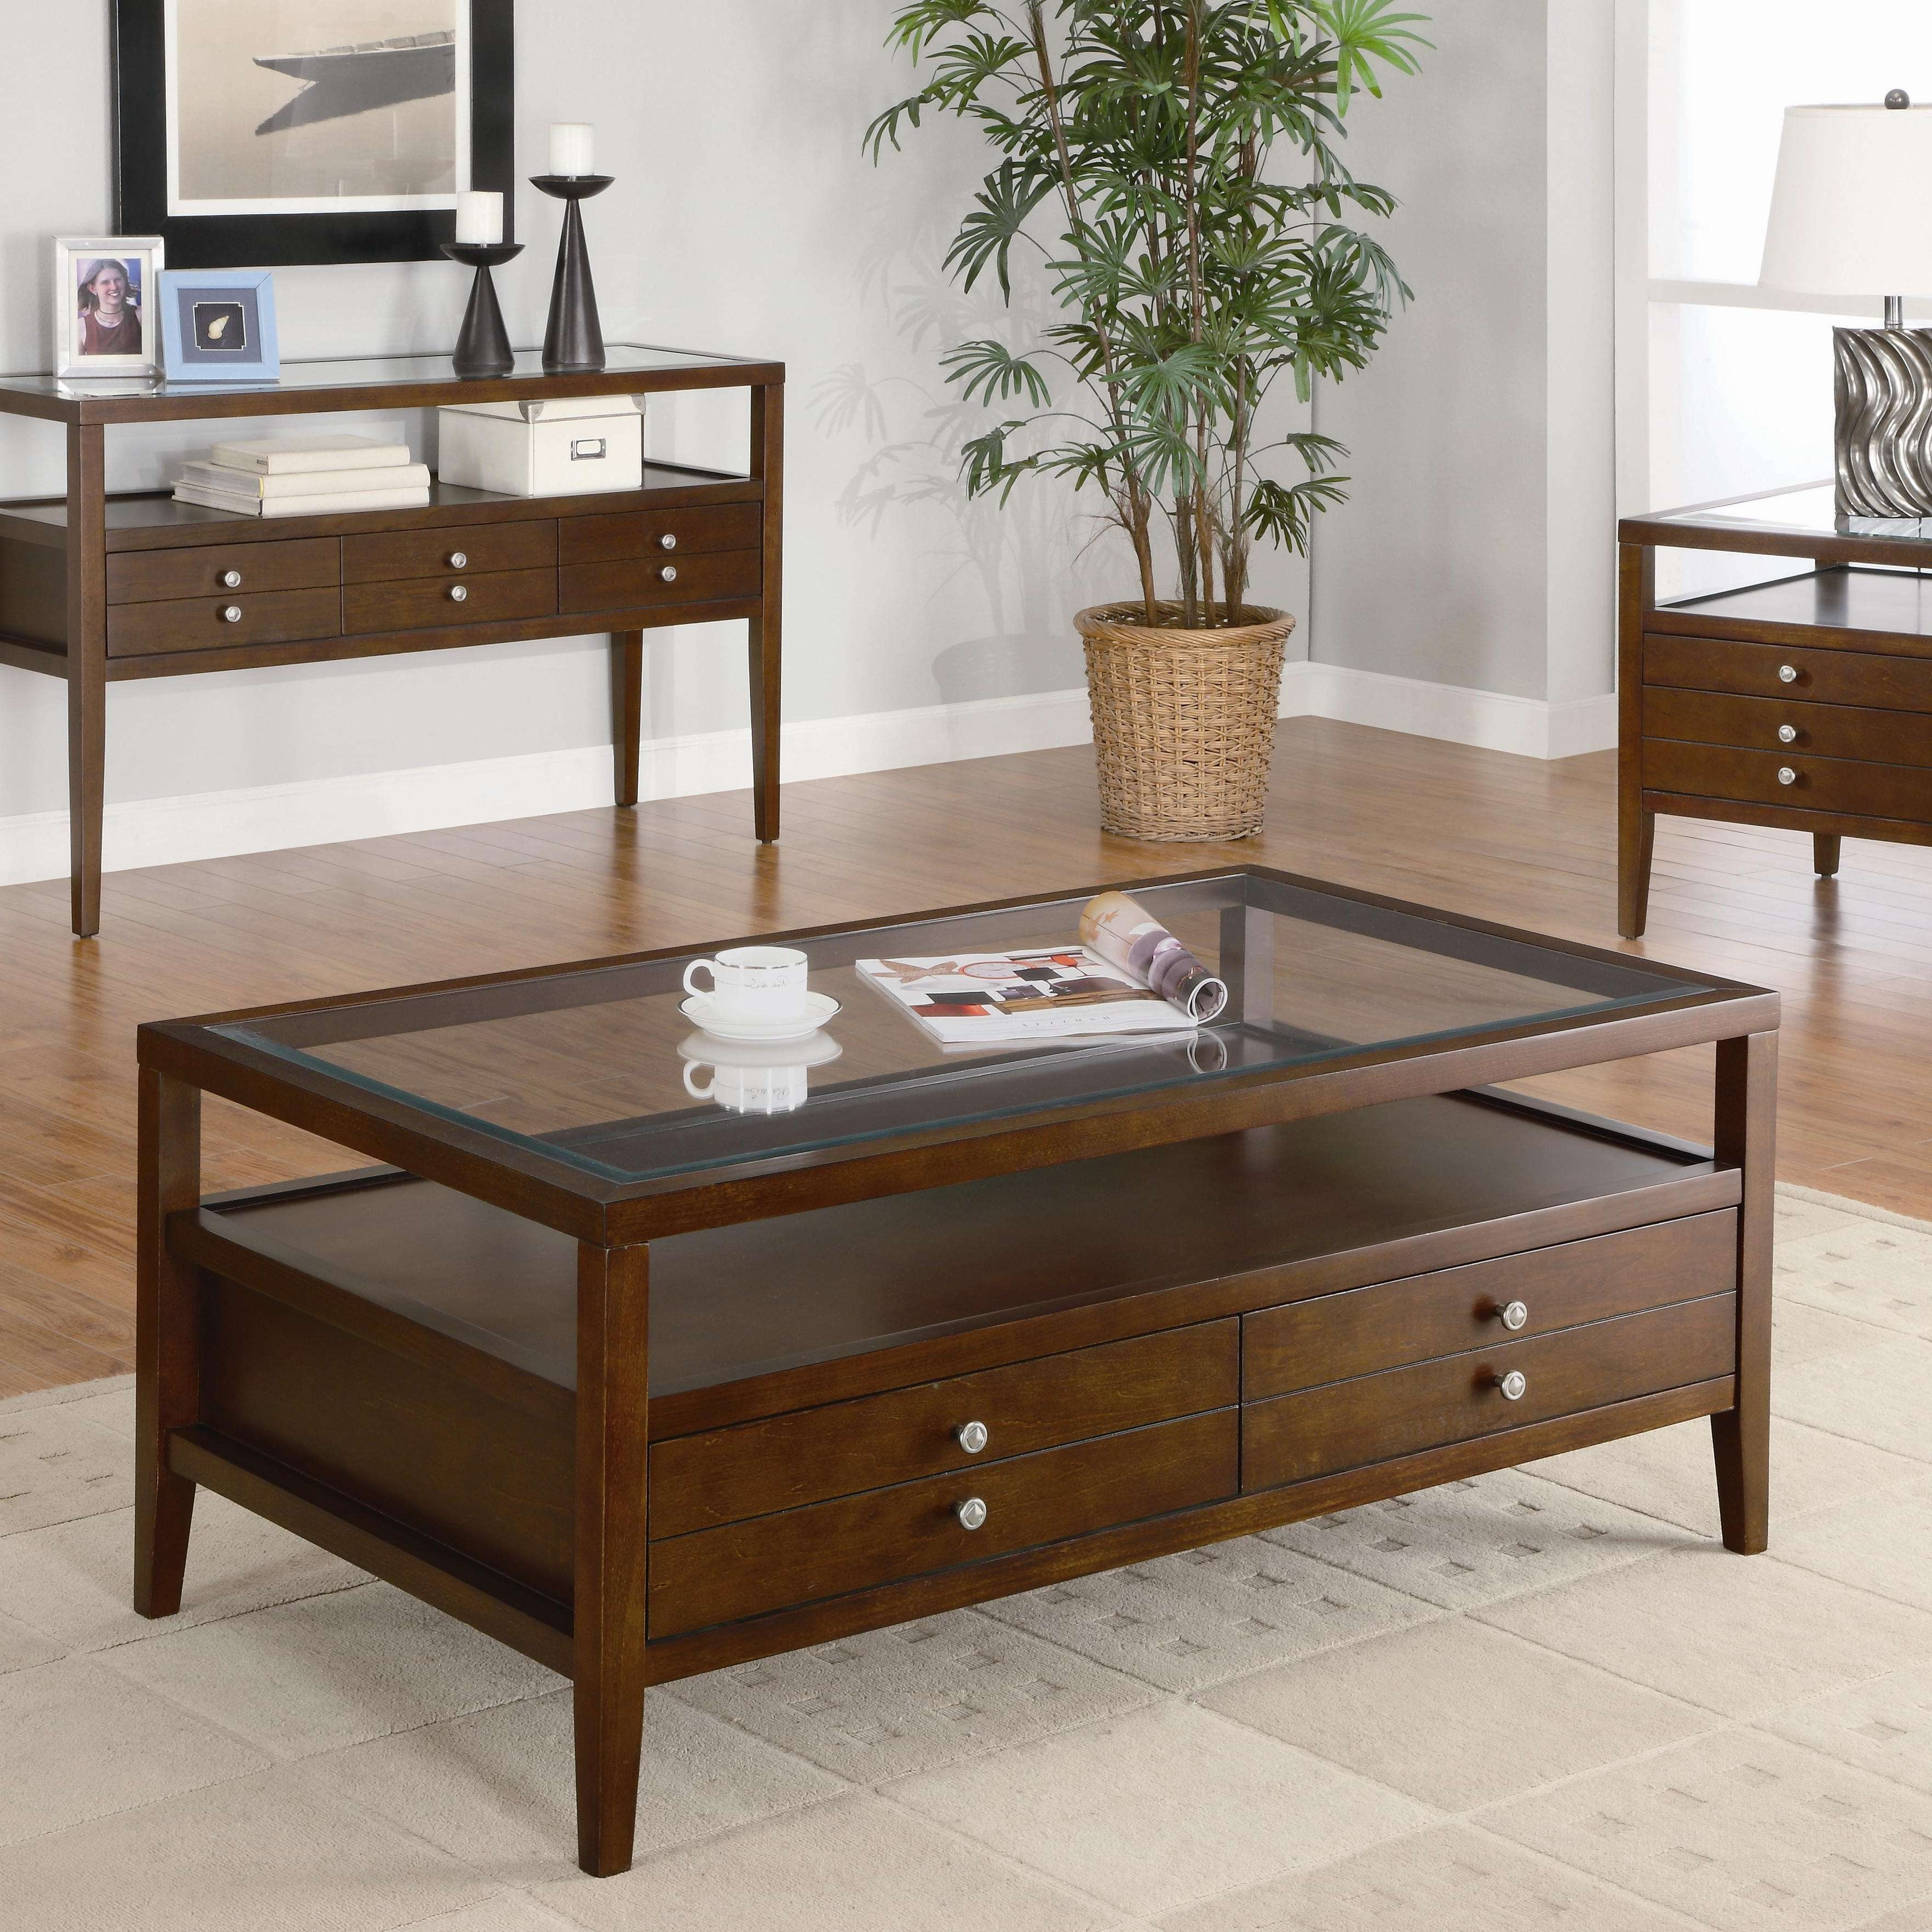 Fashionable Dark Brown Coffee Tables Intended For Living Room : Living Room Furniture Modern Coffee Tables And (View 10 of 20)